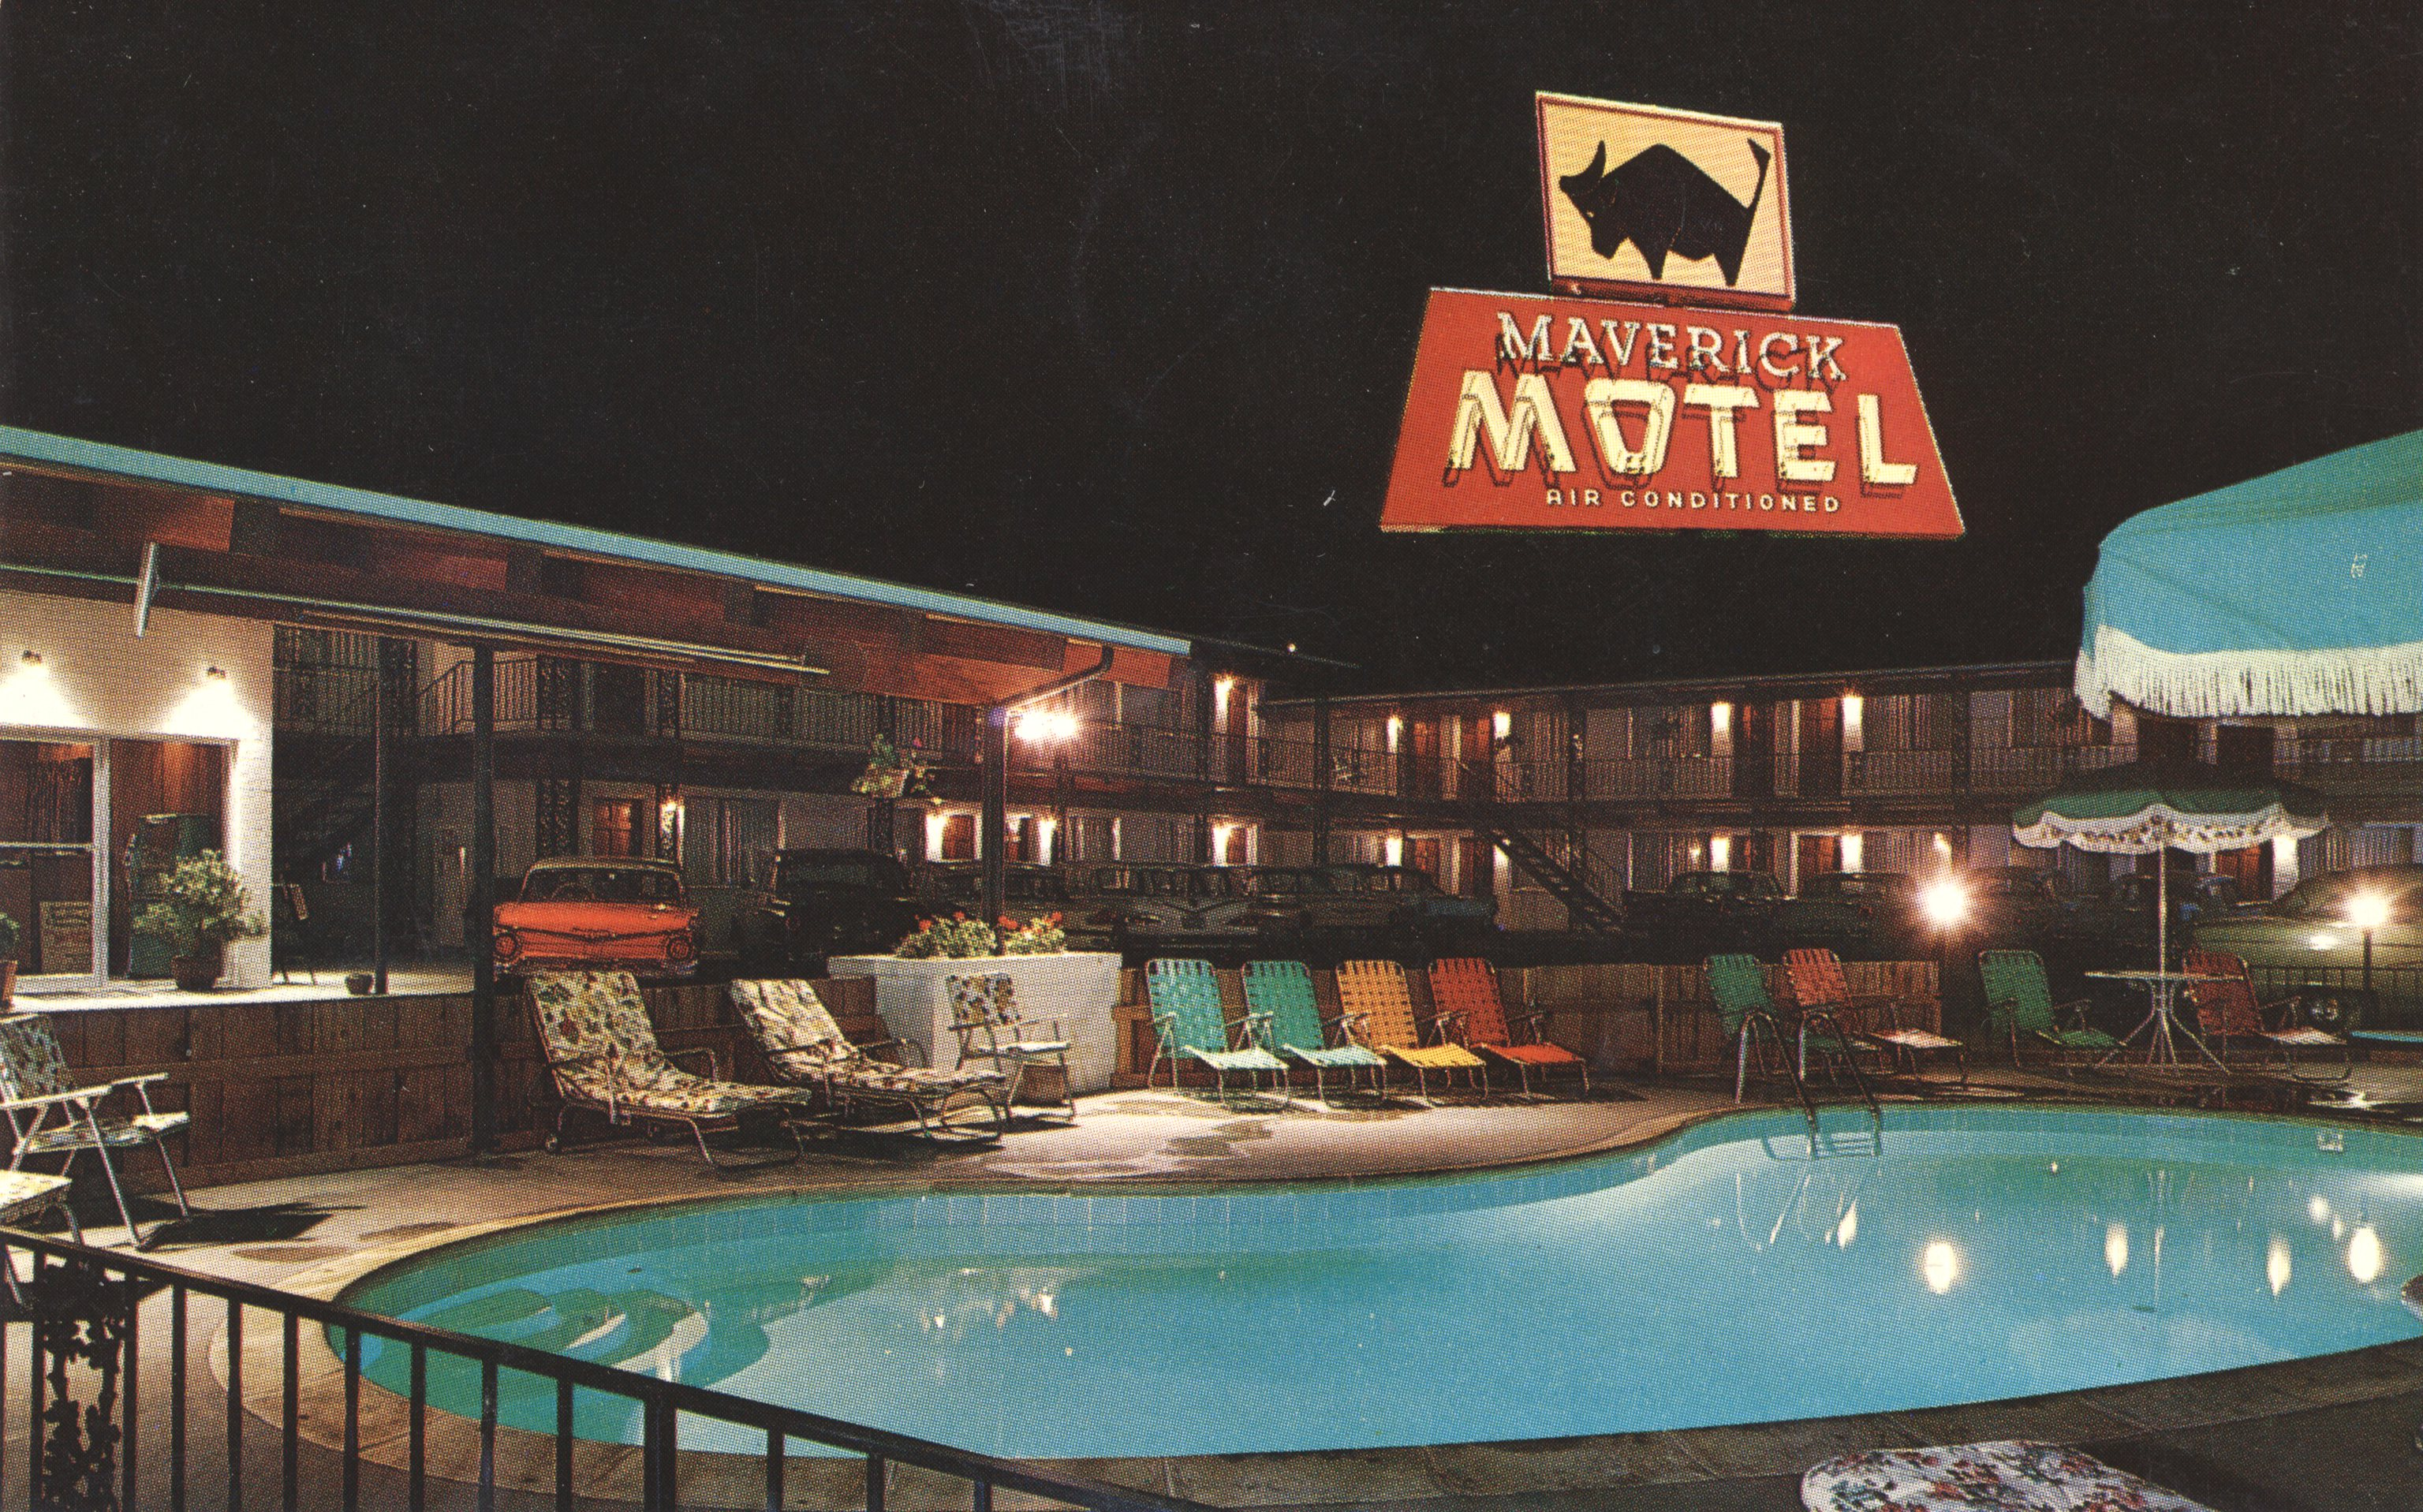 Maverick Motel - 10 Southeast Dorion Avenue, Pendleton, Oregon U.S.A. - date unknown